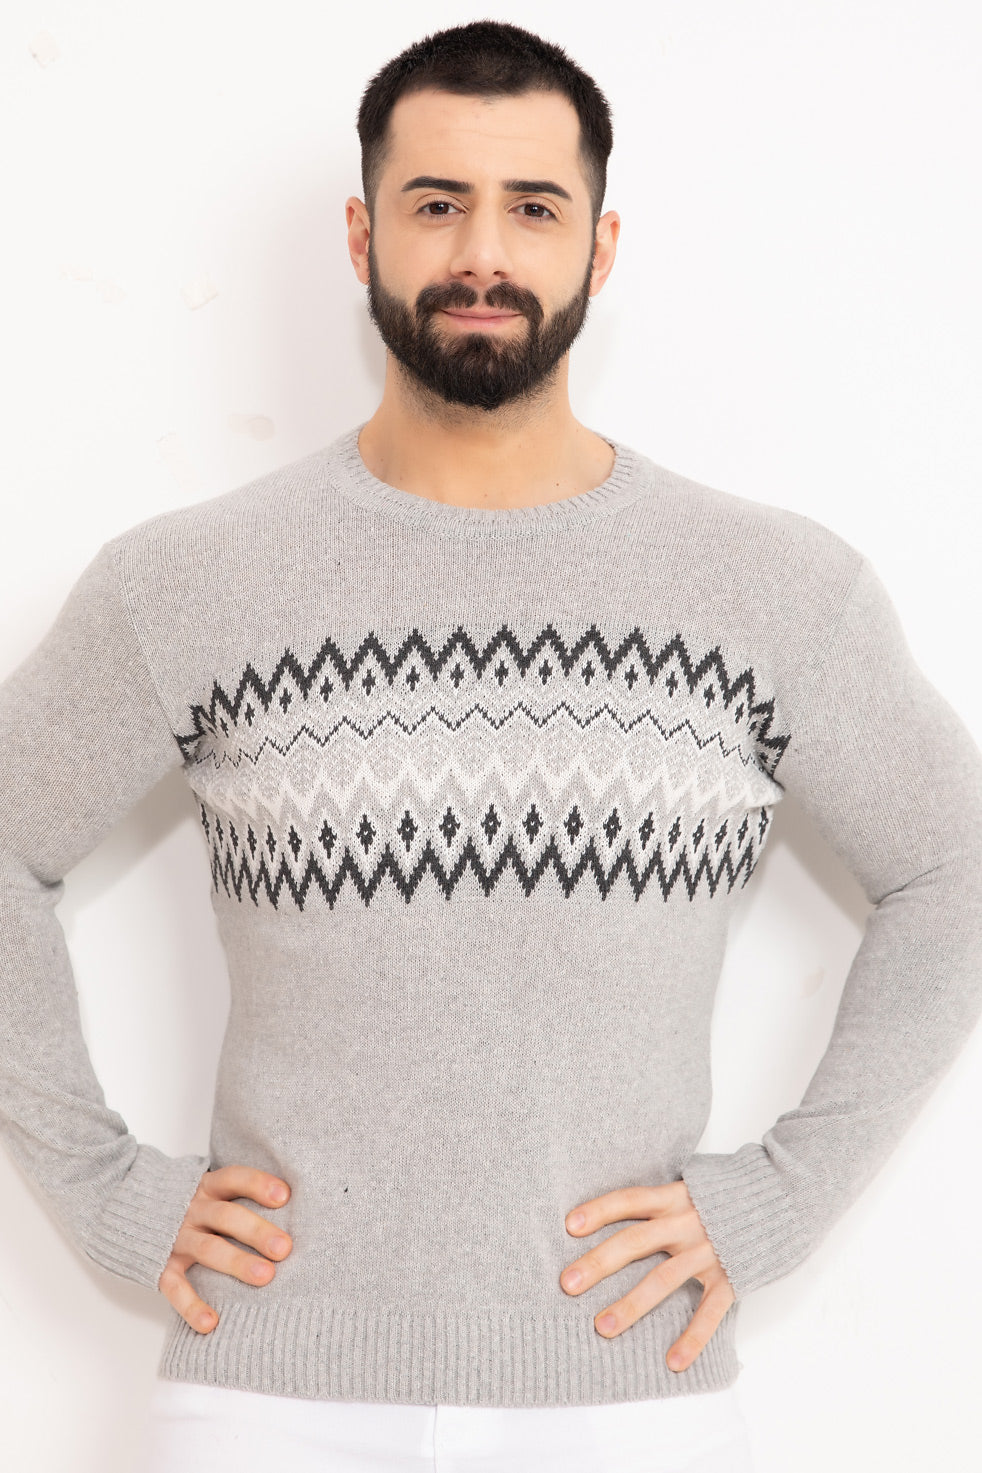 Grey Patterned Men's Knitwear Sweater